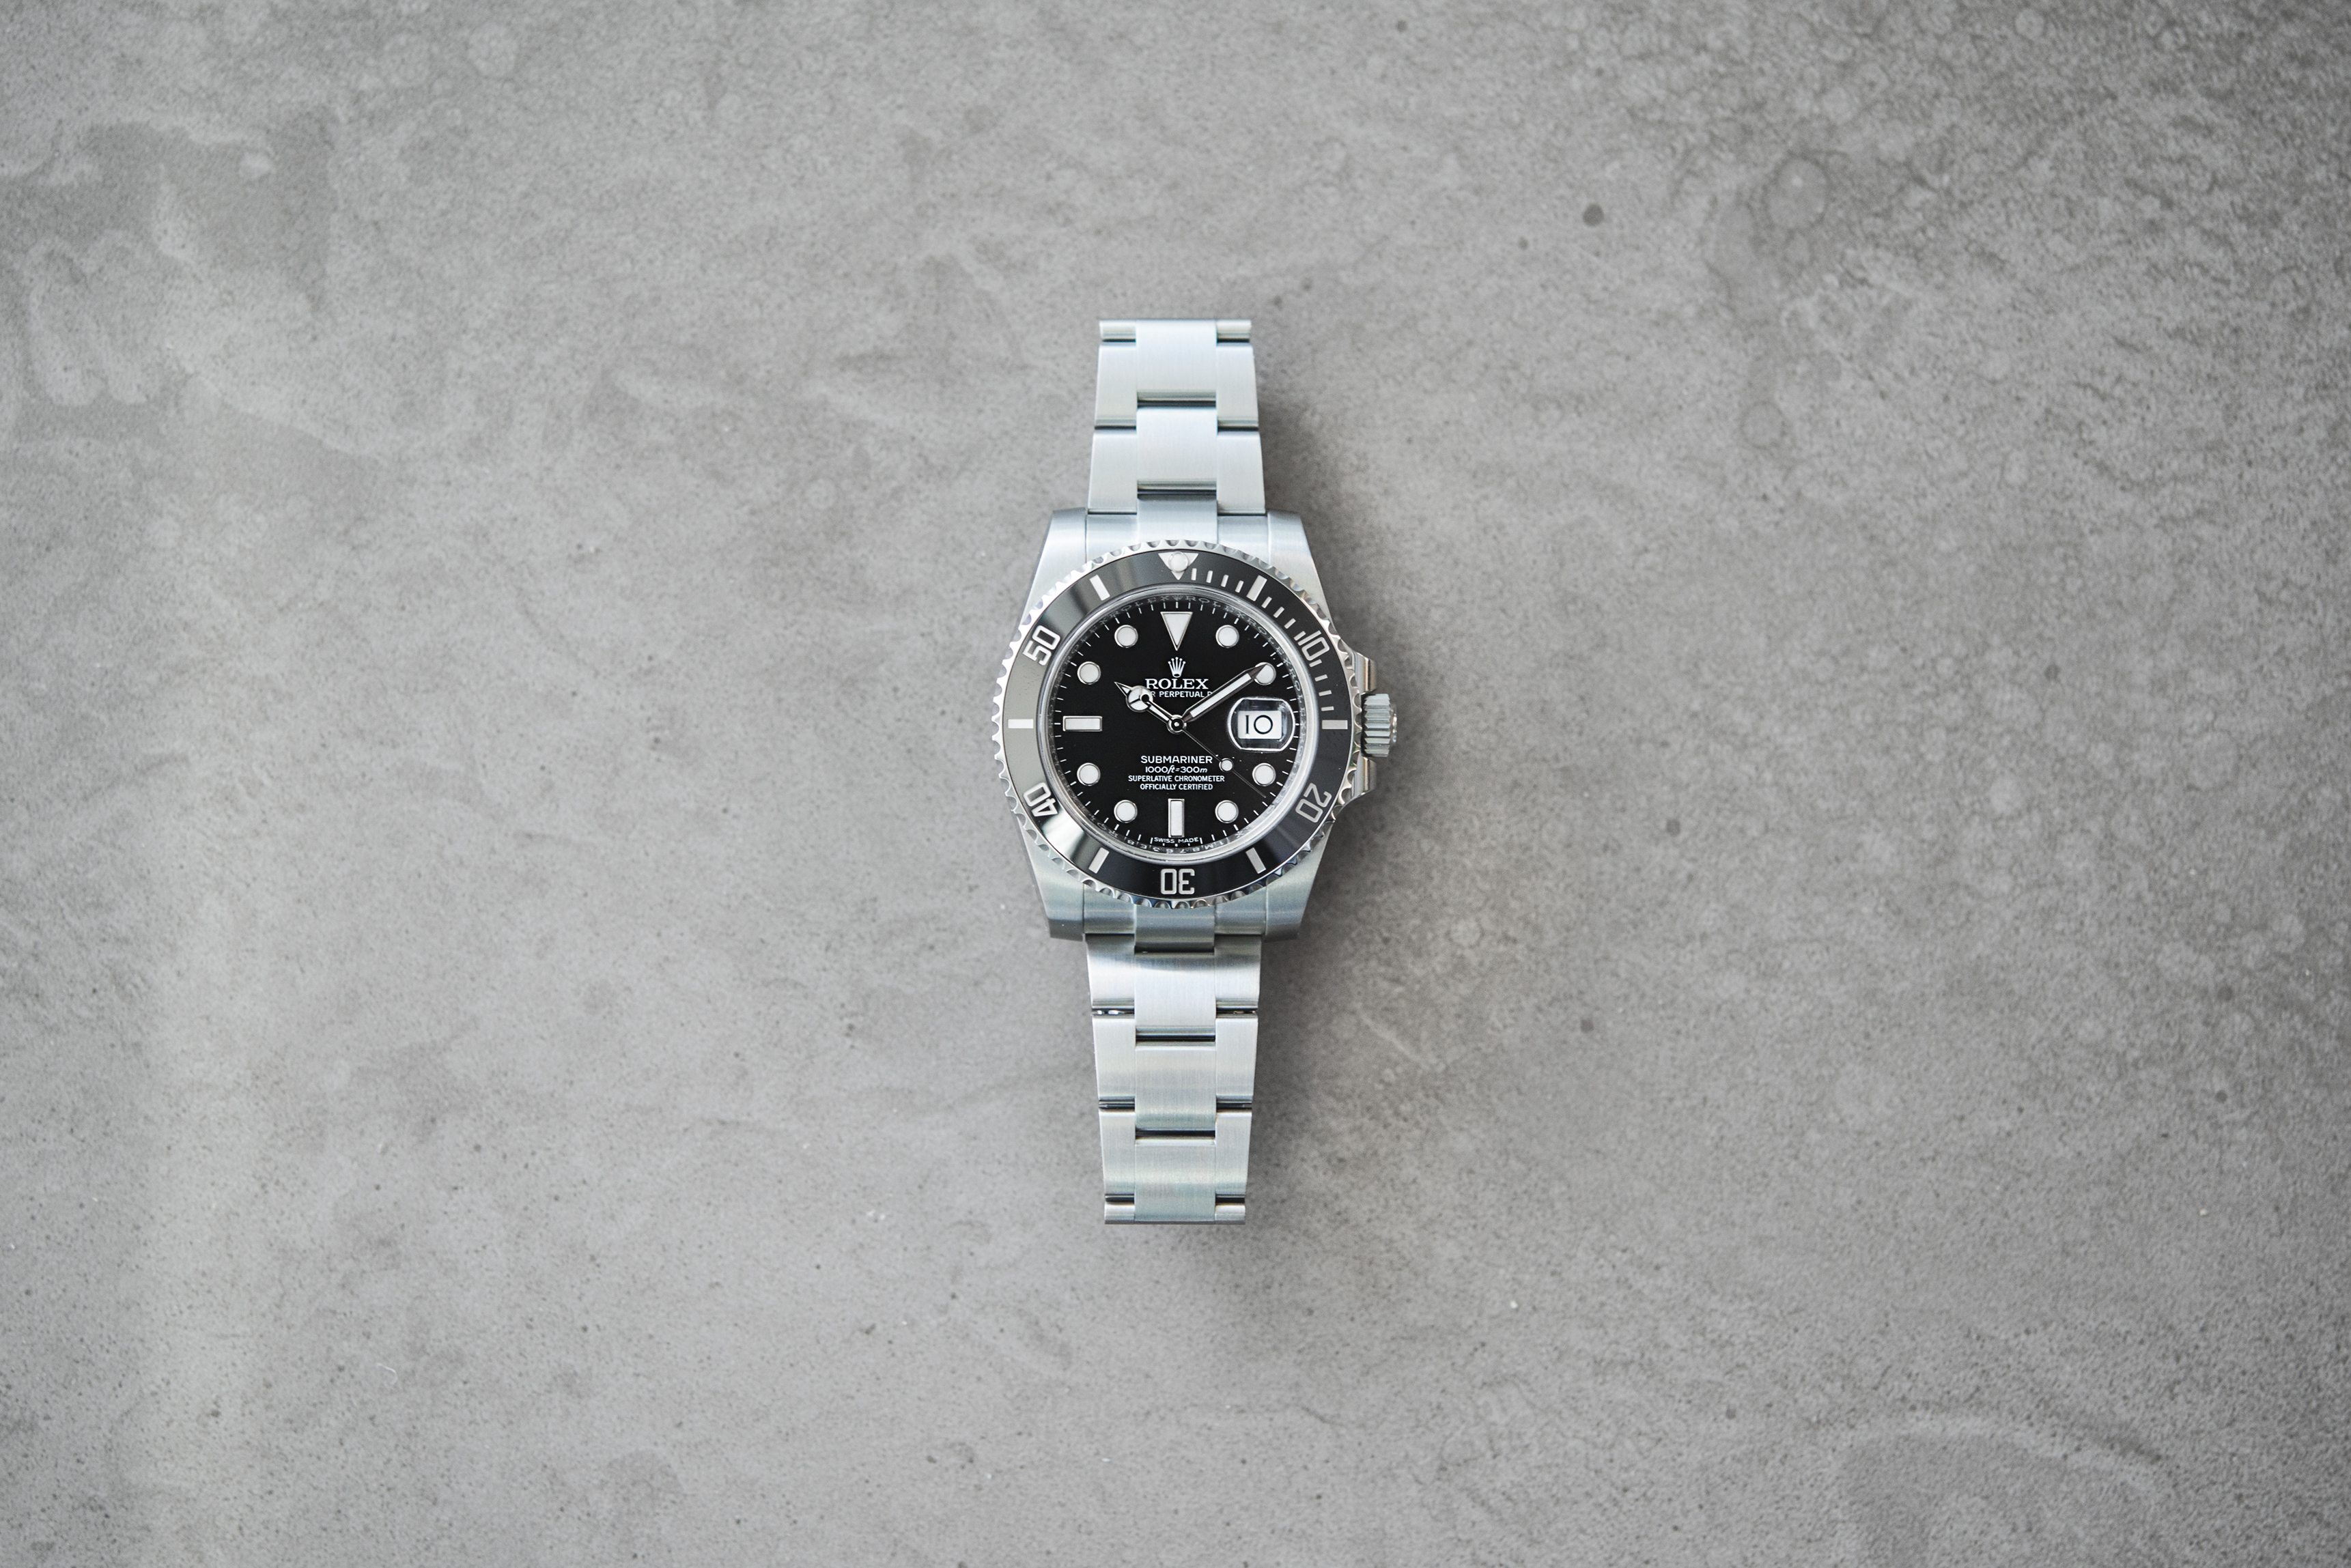 Rolex dive watches